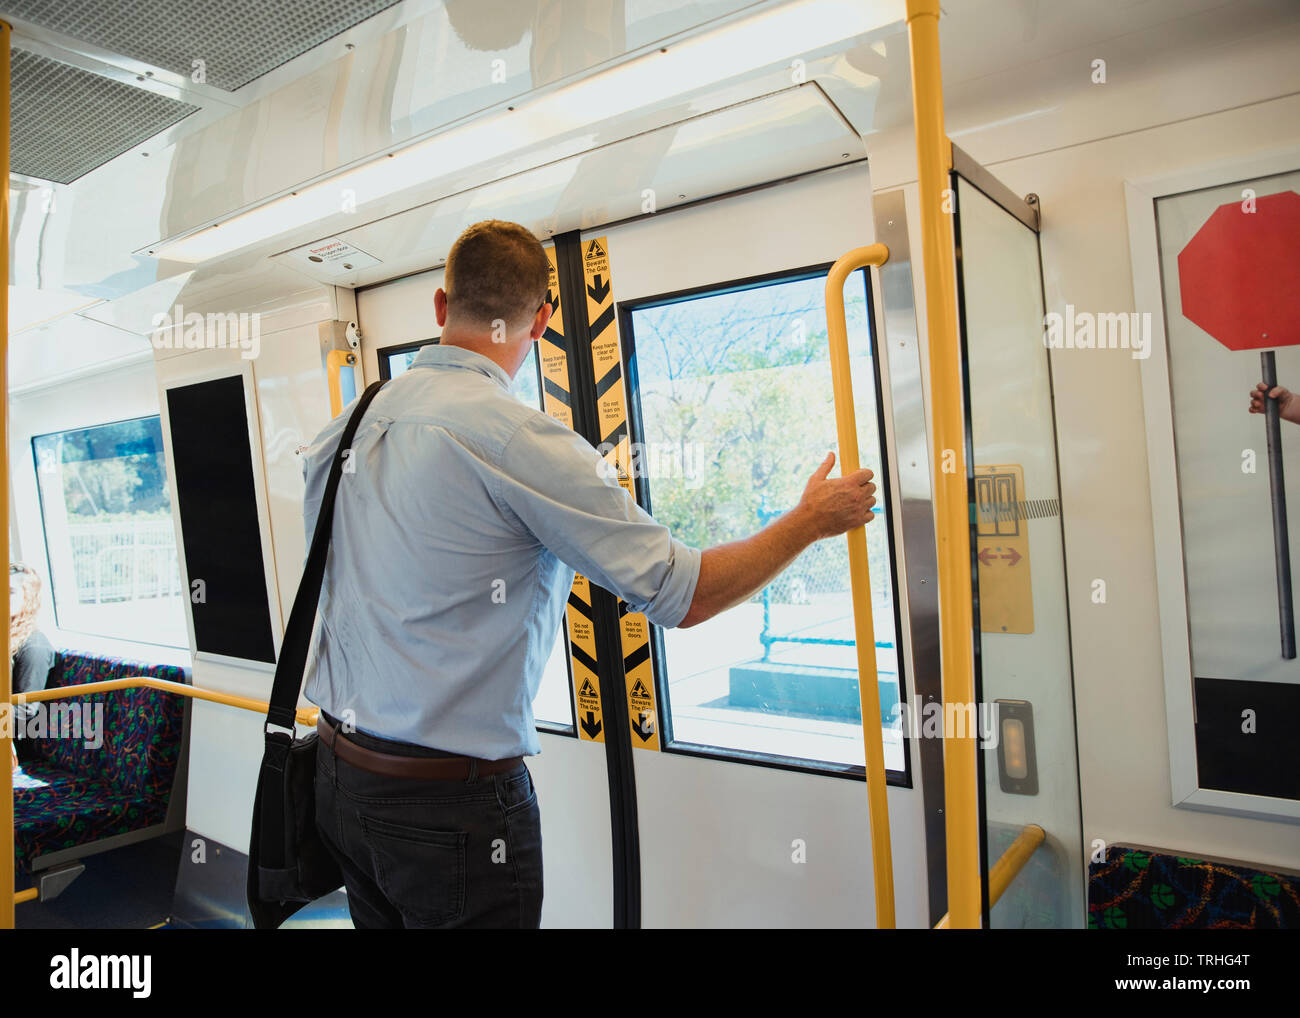 A rear-view shot of a mid-adult businessman standing on a train commuting to work, he is arriving at his destination. - Stock Image